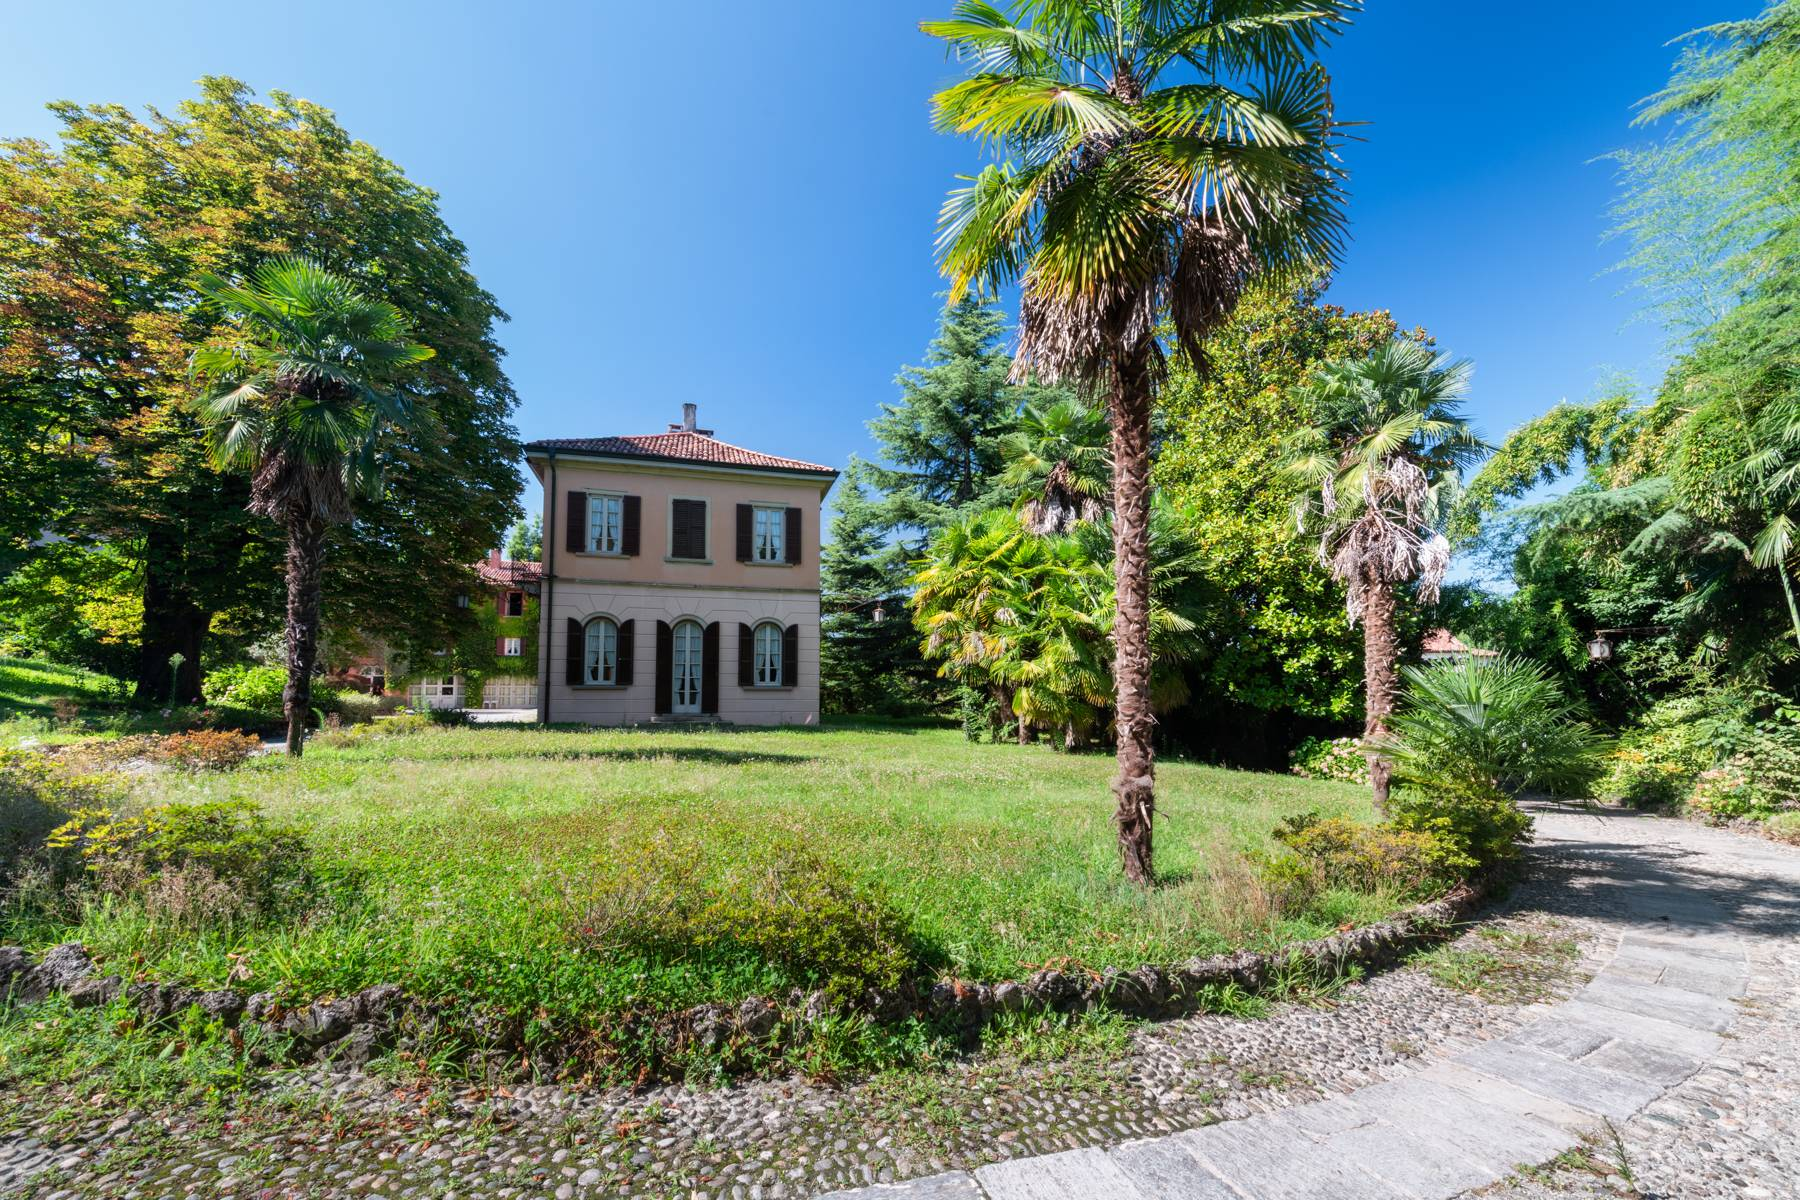 Period villa with park and swimming pool in Brianza - 19